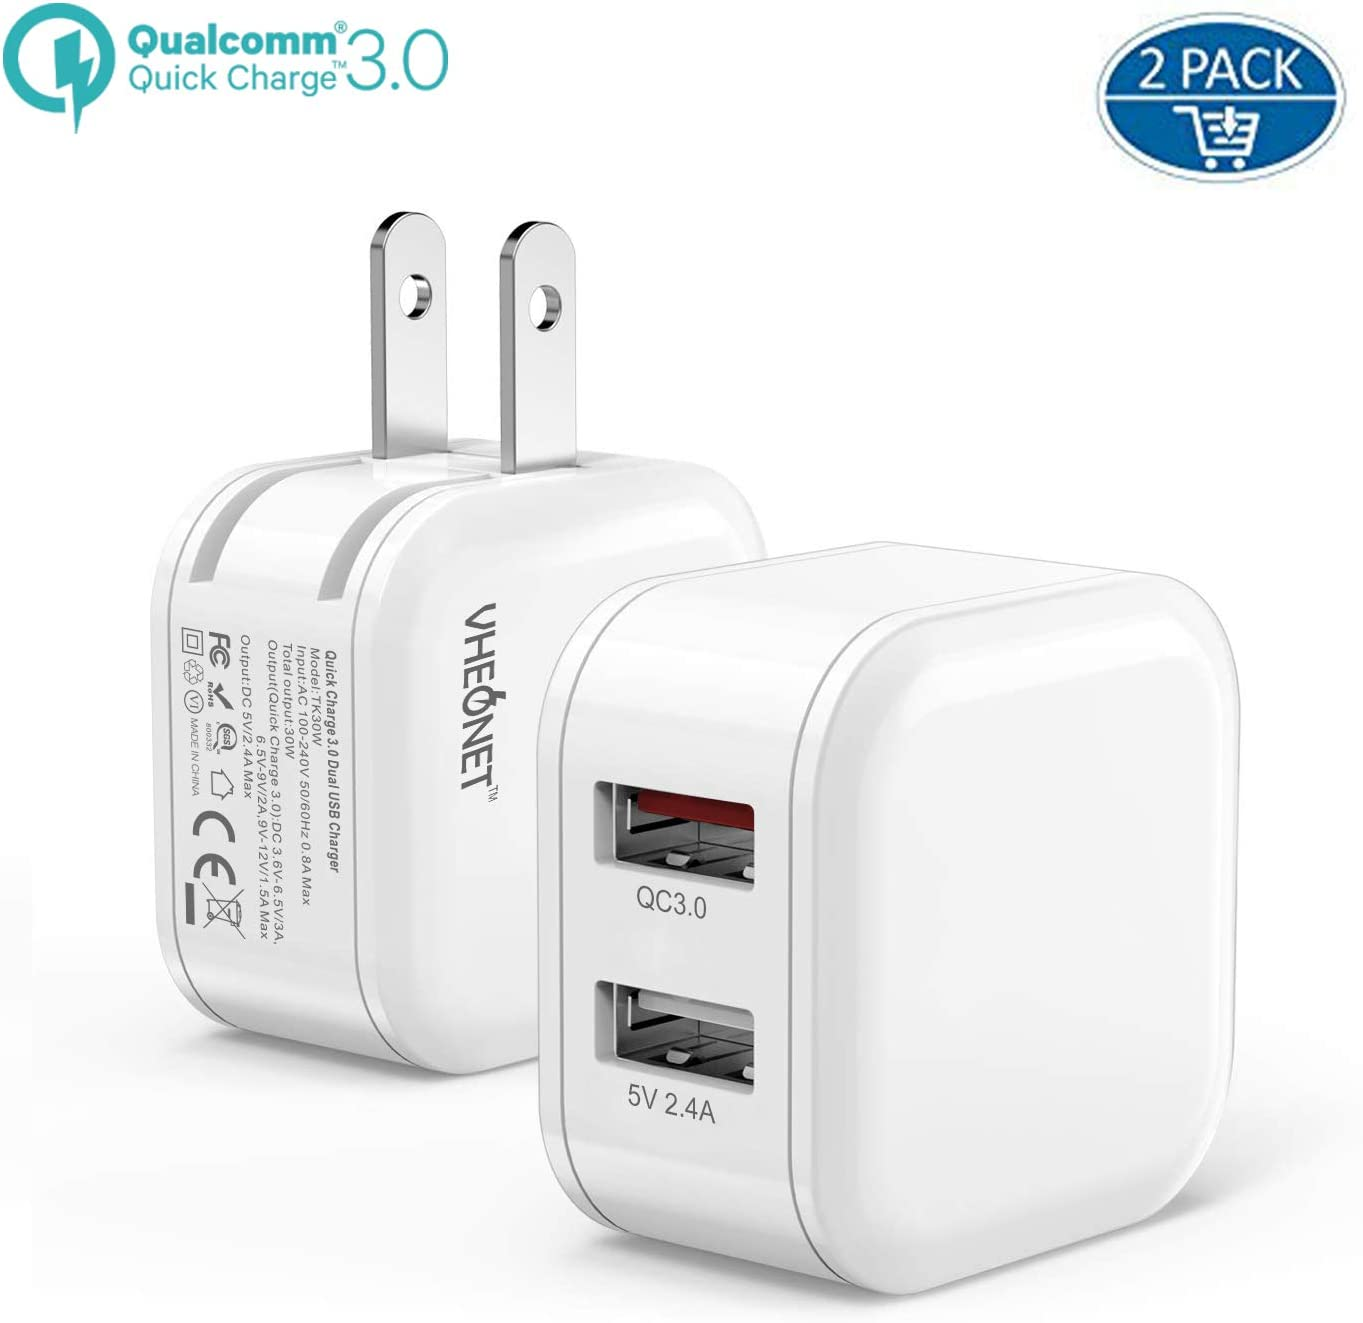 Galaxy S10 9 8 7 Plus LG Google one Plus 6 Phone iPad Mini Air Pro Car Charger,Dual USB Wall Charger and Car Charger with Travel Adapter Foldable Plug Home for iPhone X Xs MAX 6 7 8 Plus